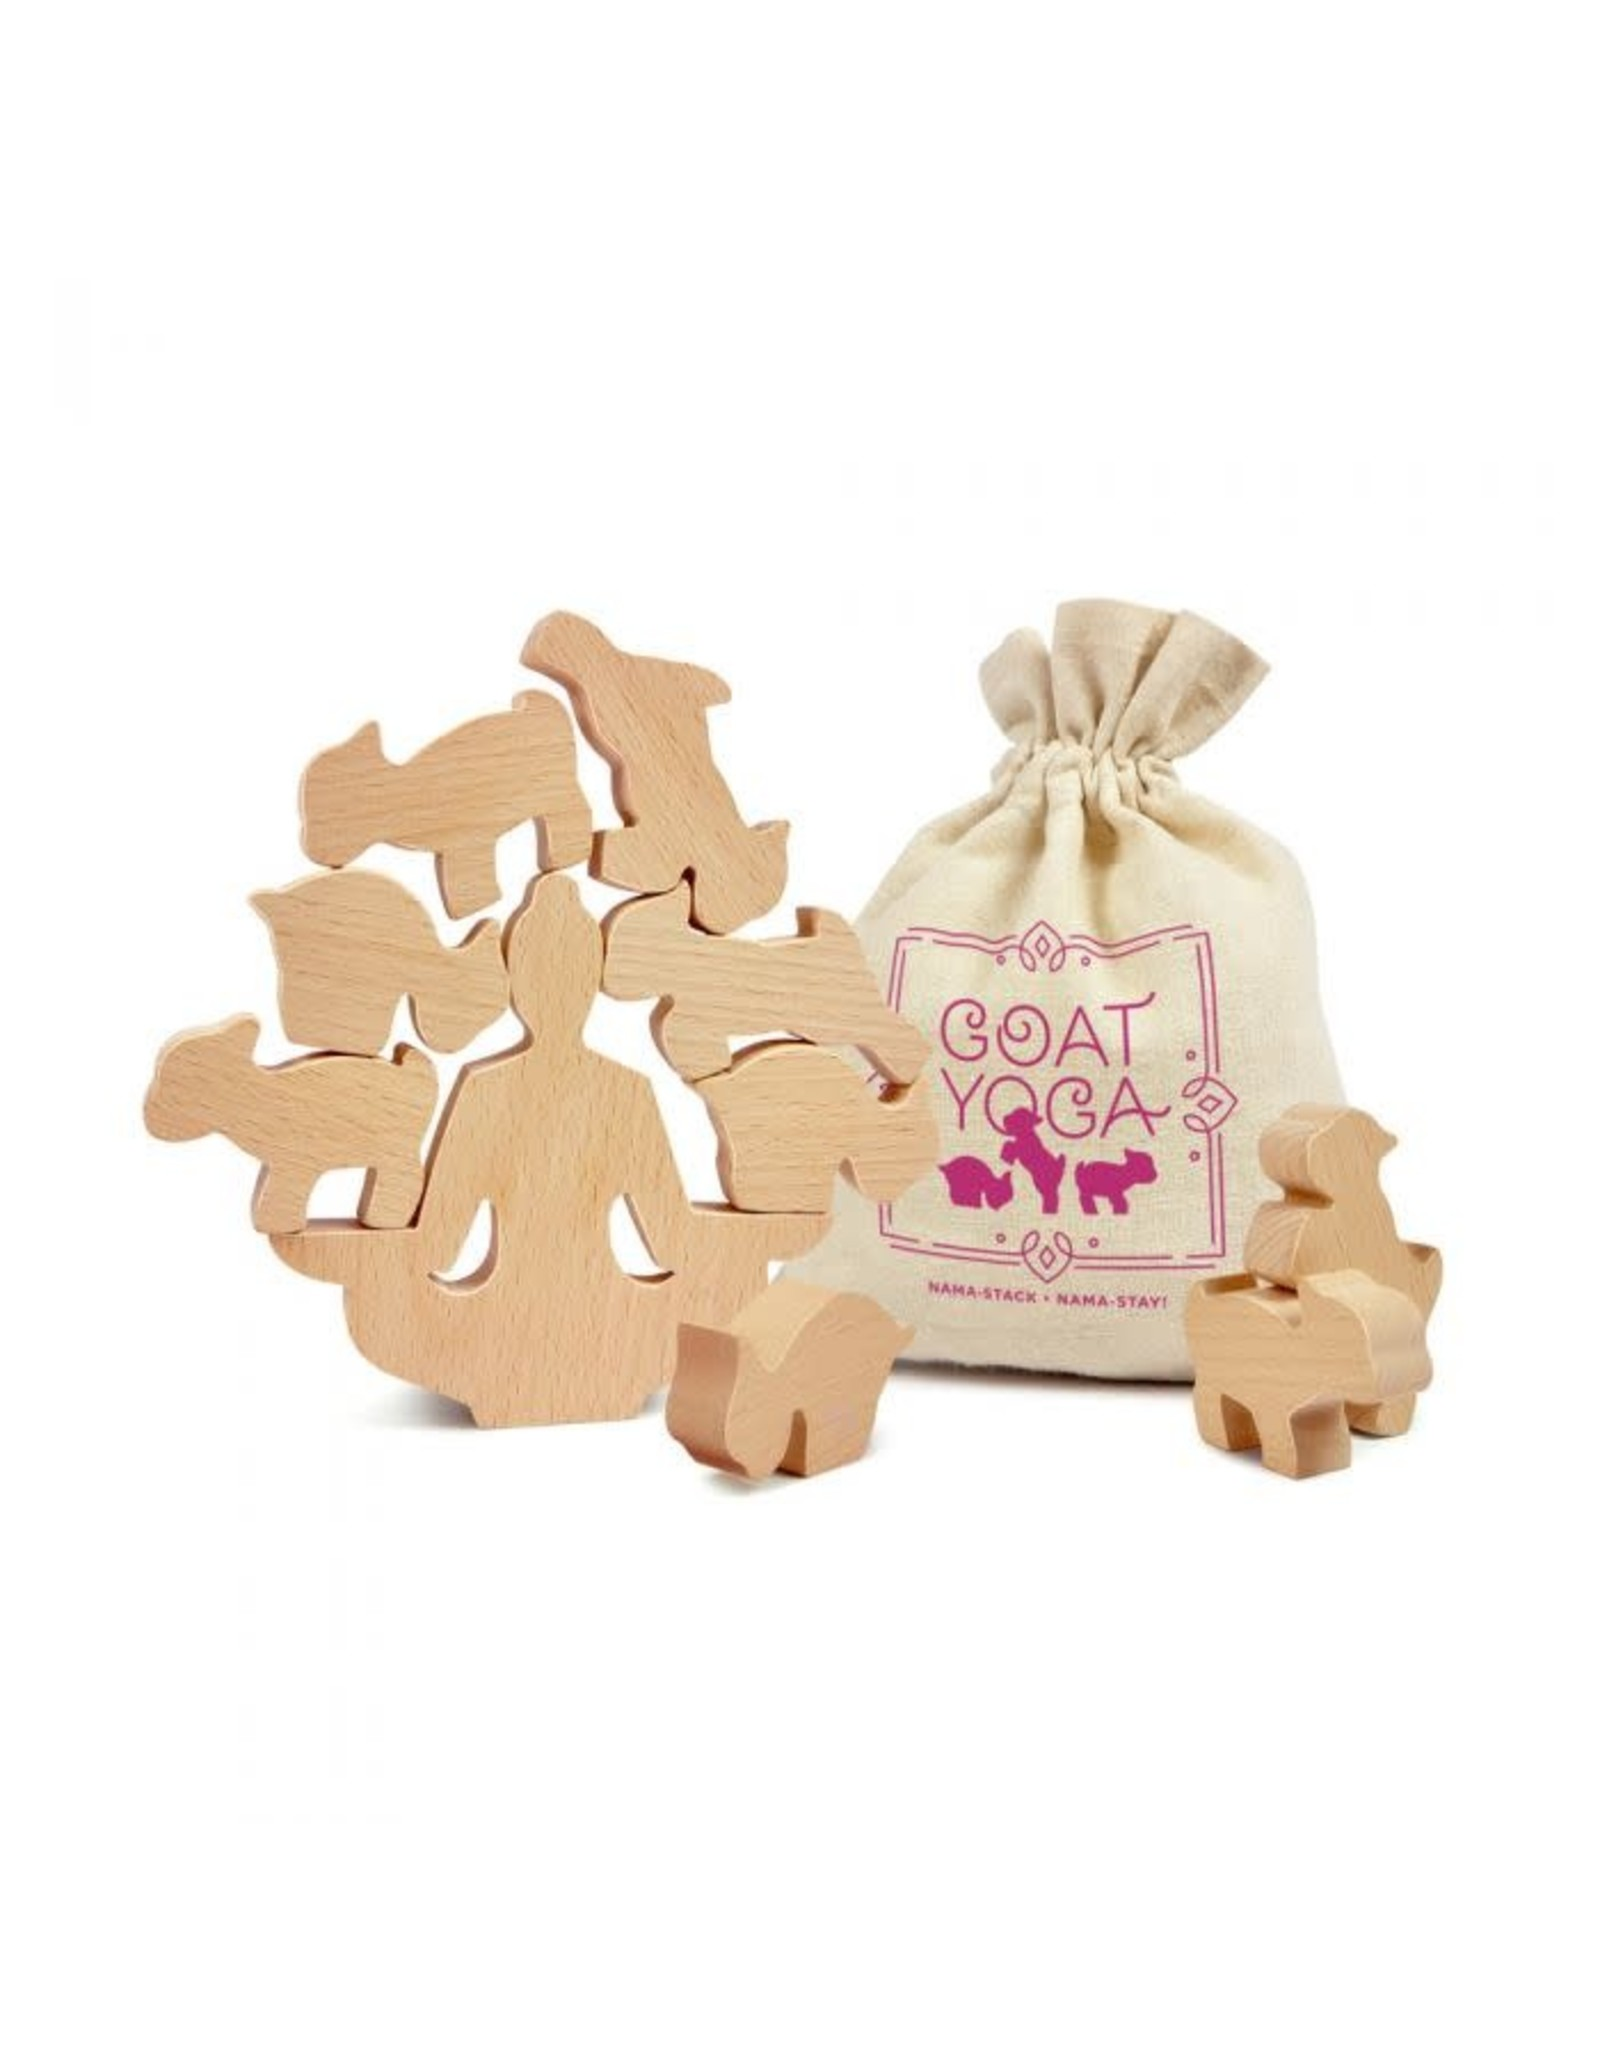 Goat Yoga - Wooden Stacking Game